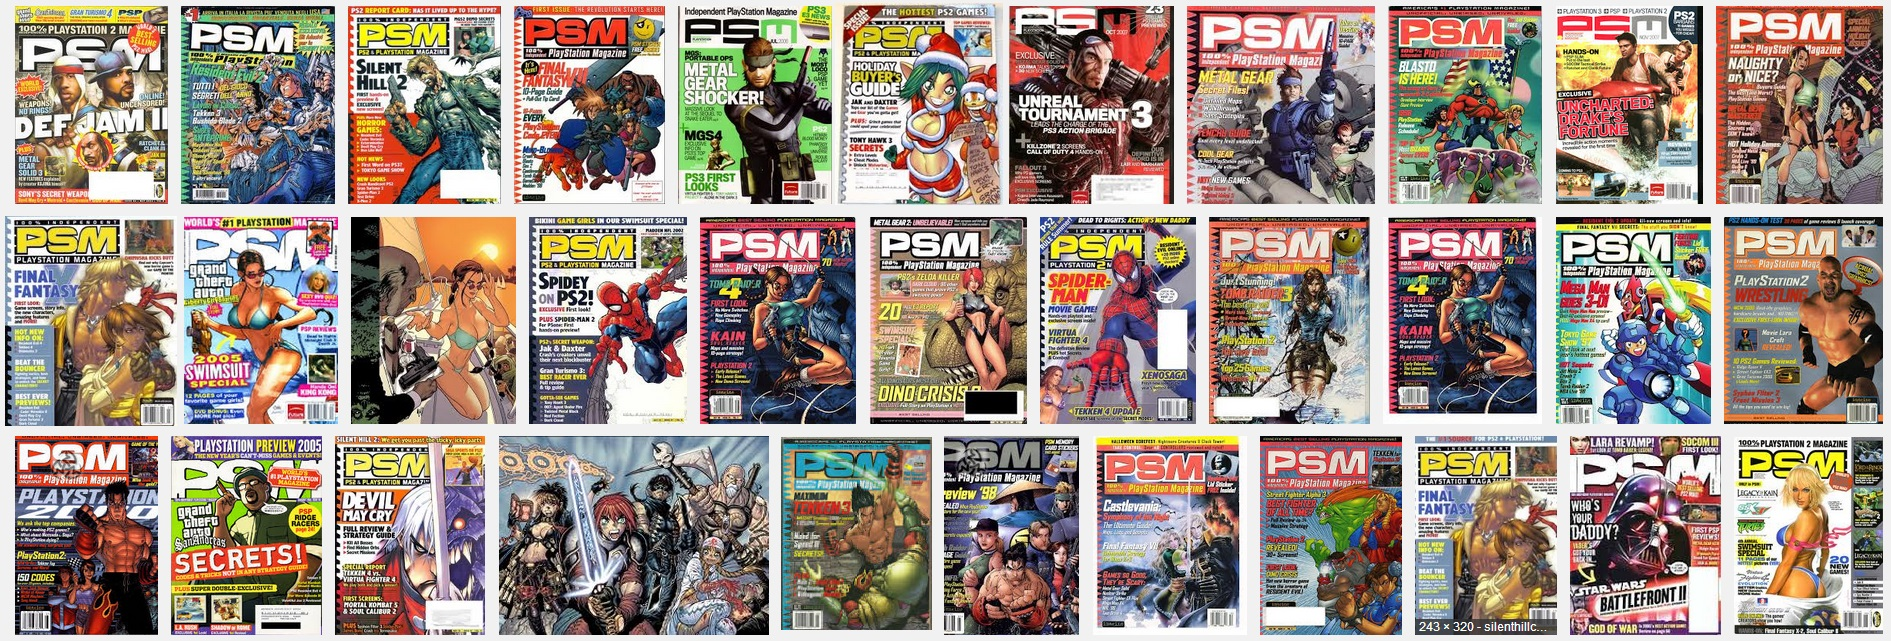 psm covers